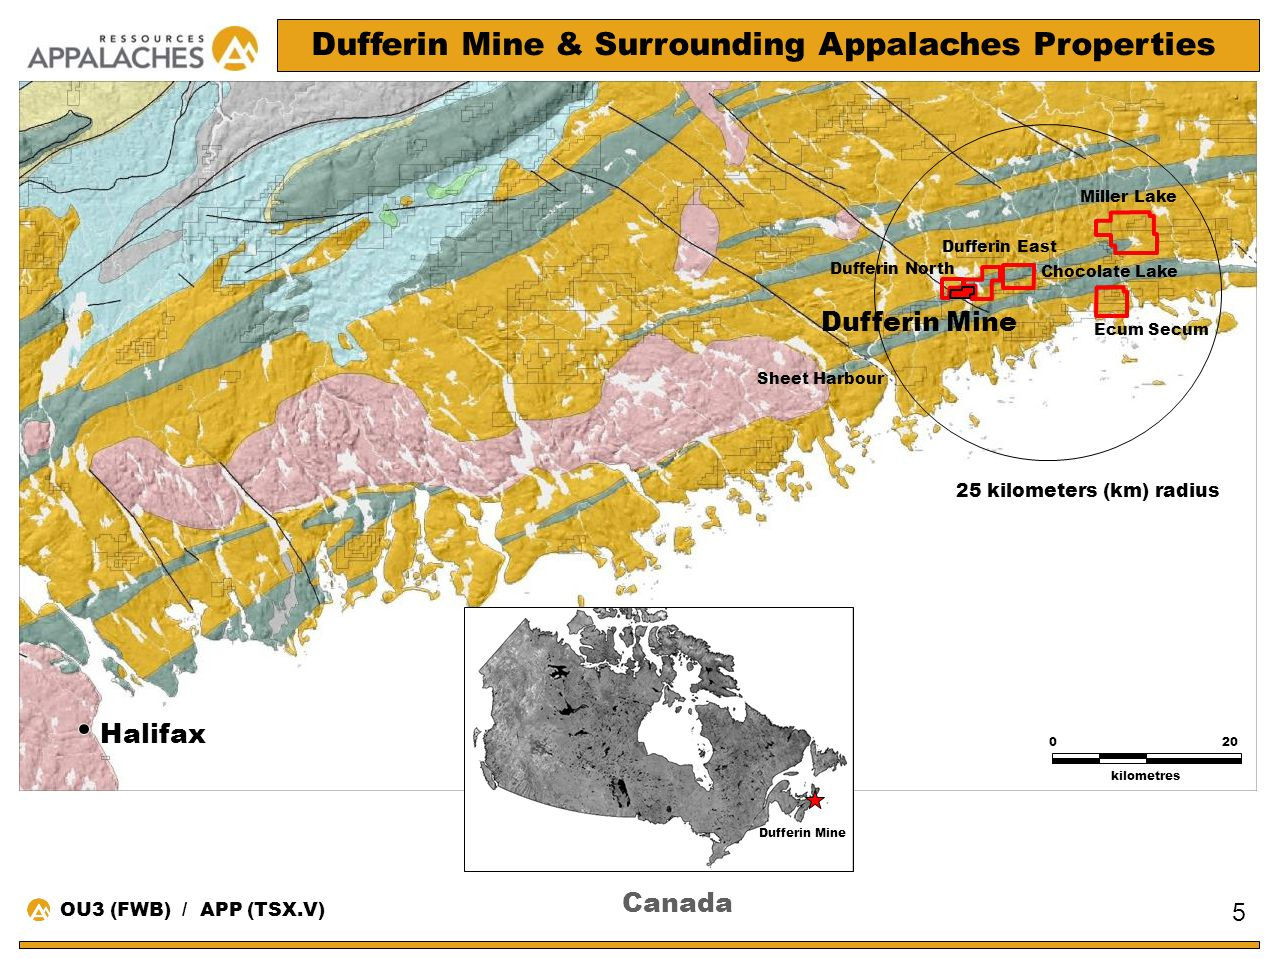 Dufferin Mine & Surrounding Appalaches Properties